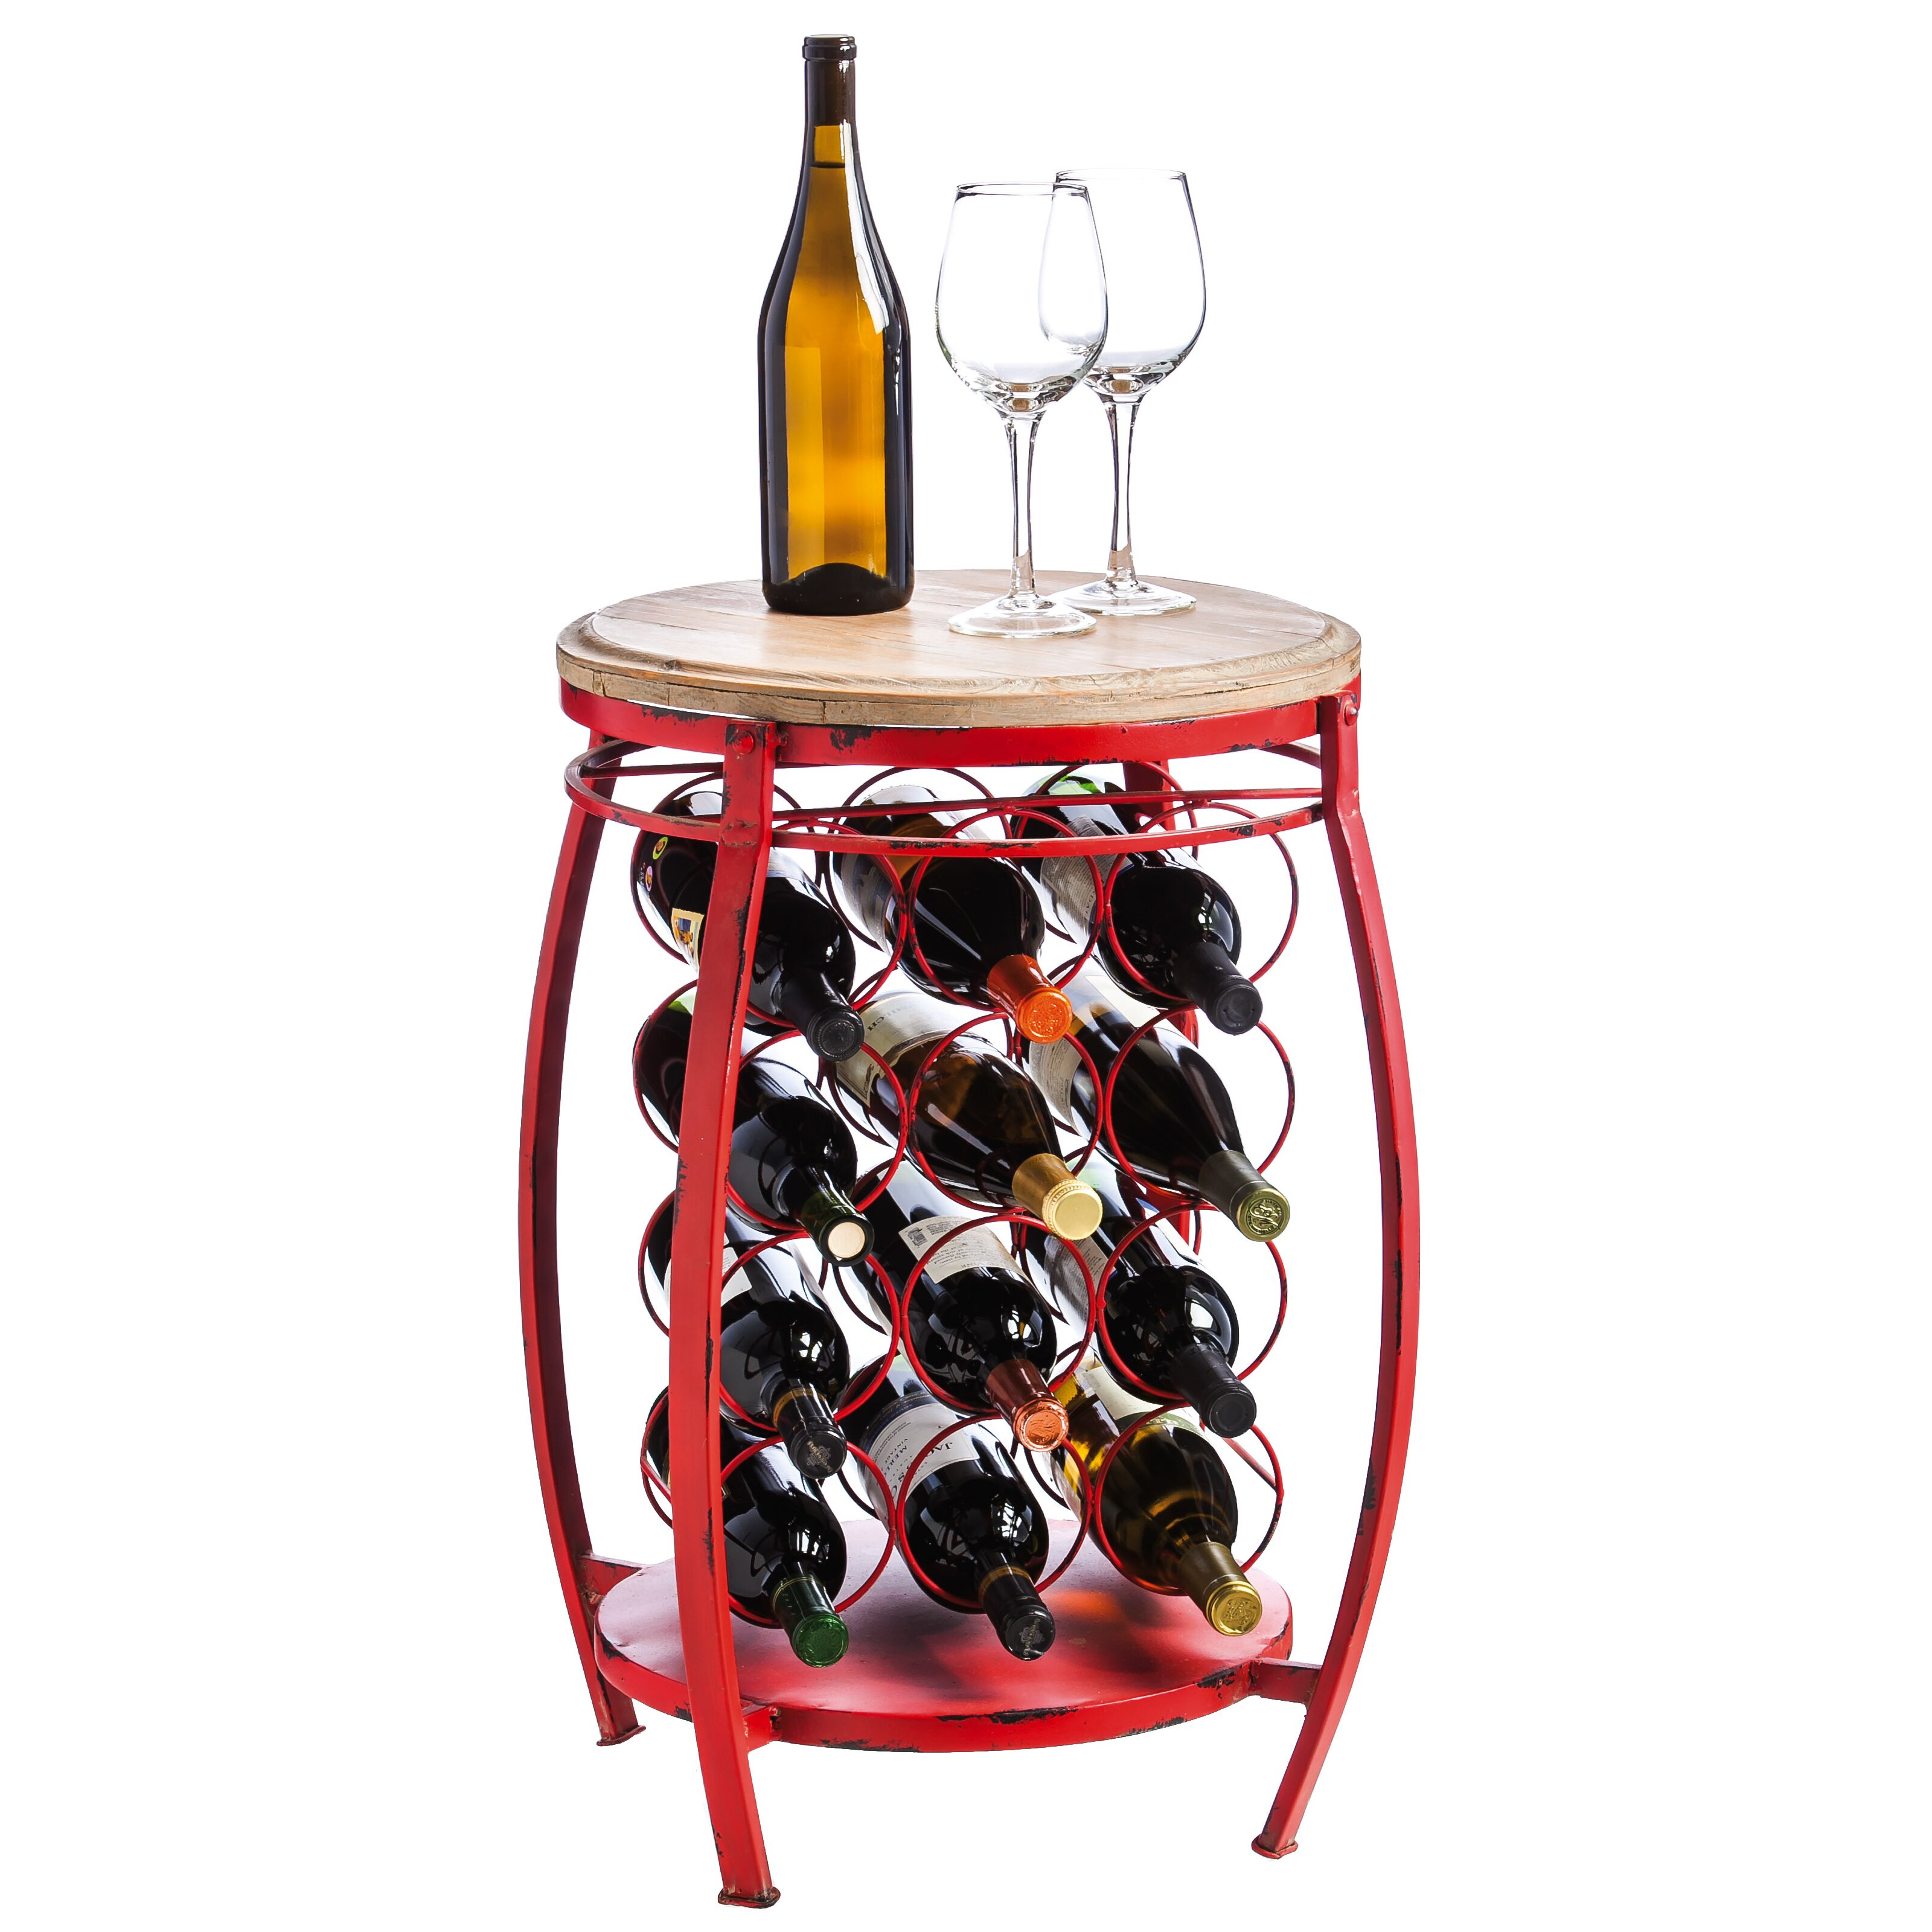 Evergreen enterprises inc 12 bottle floor wine rack for Floor wine rack